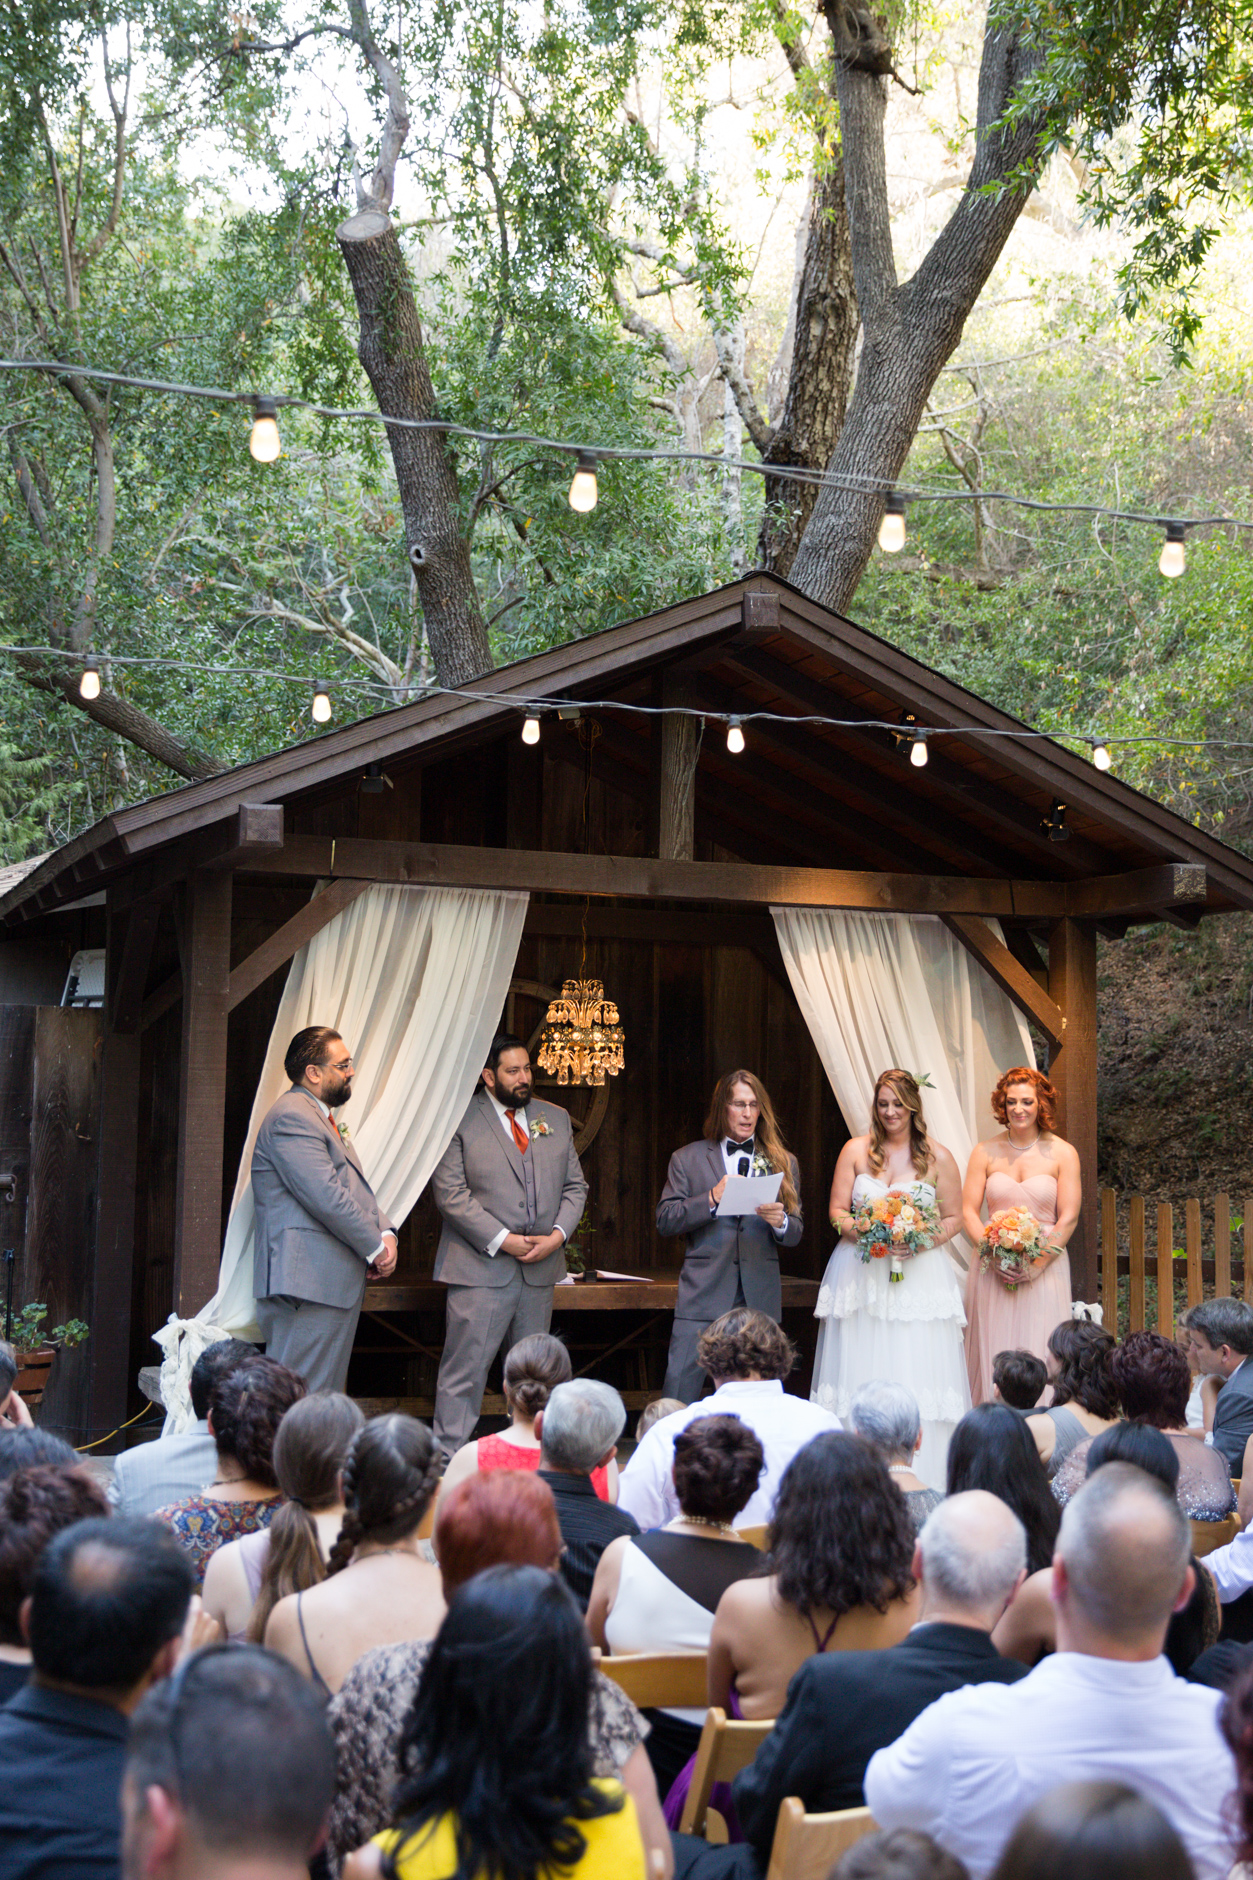 Becky Davis Photography  Saying I do nestled in nature with family and friends